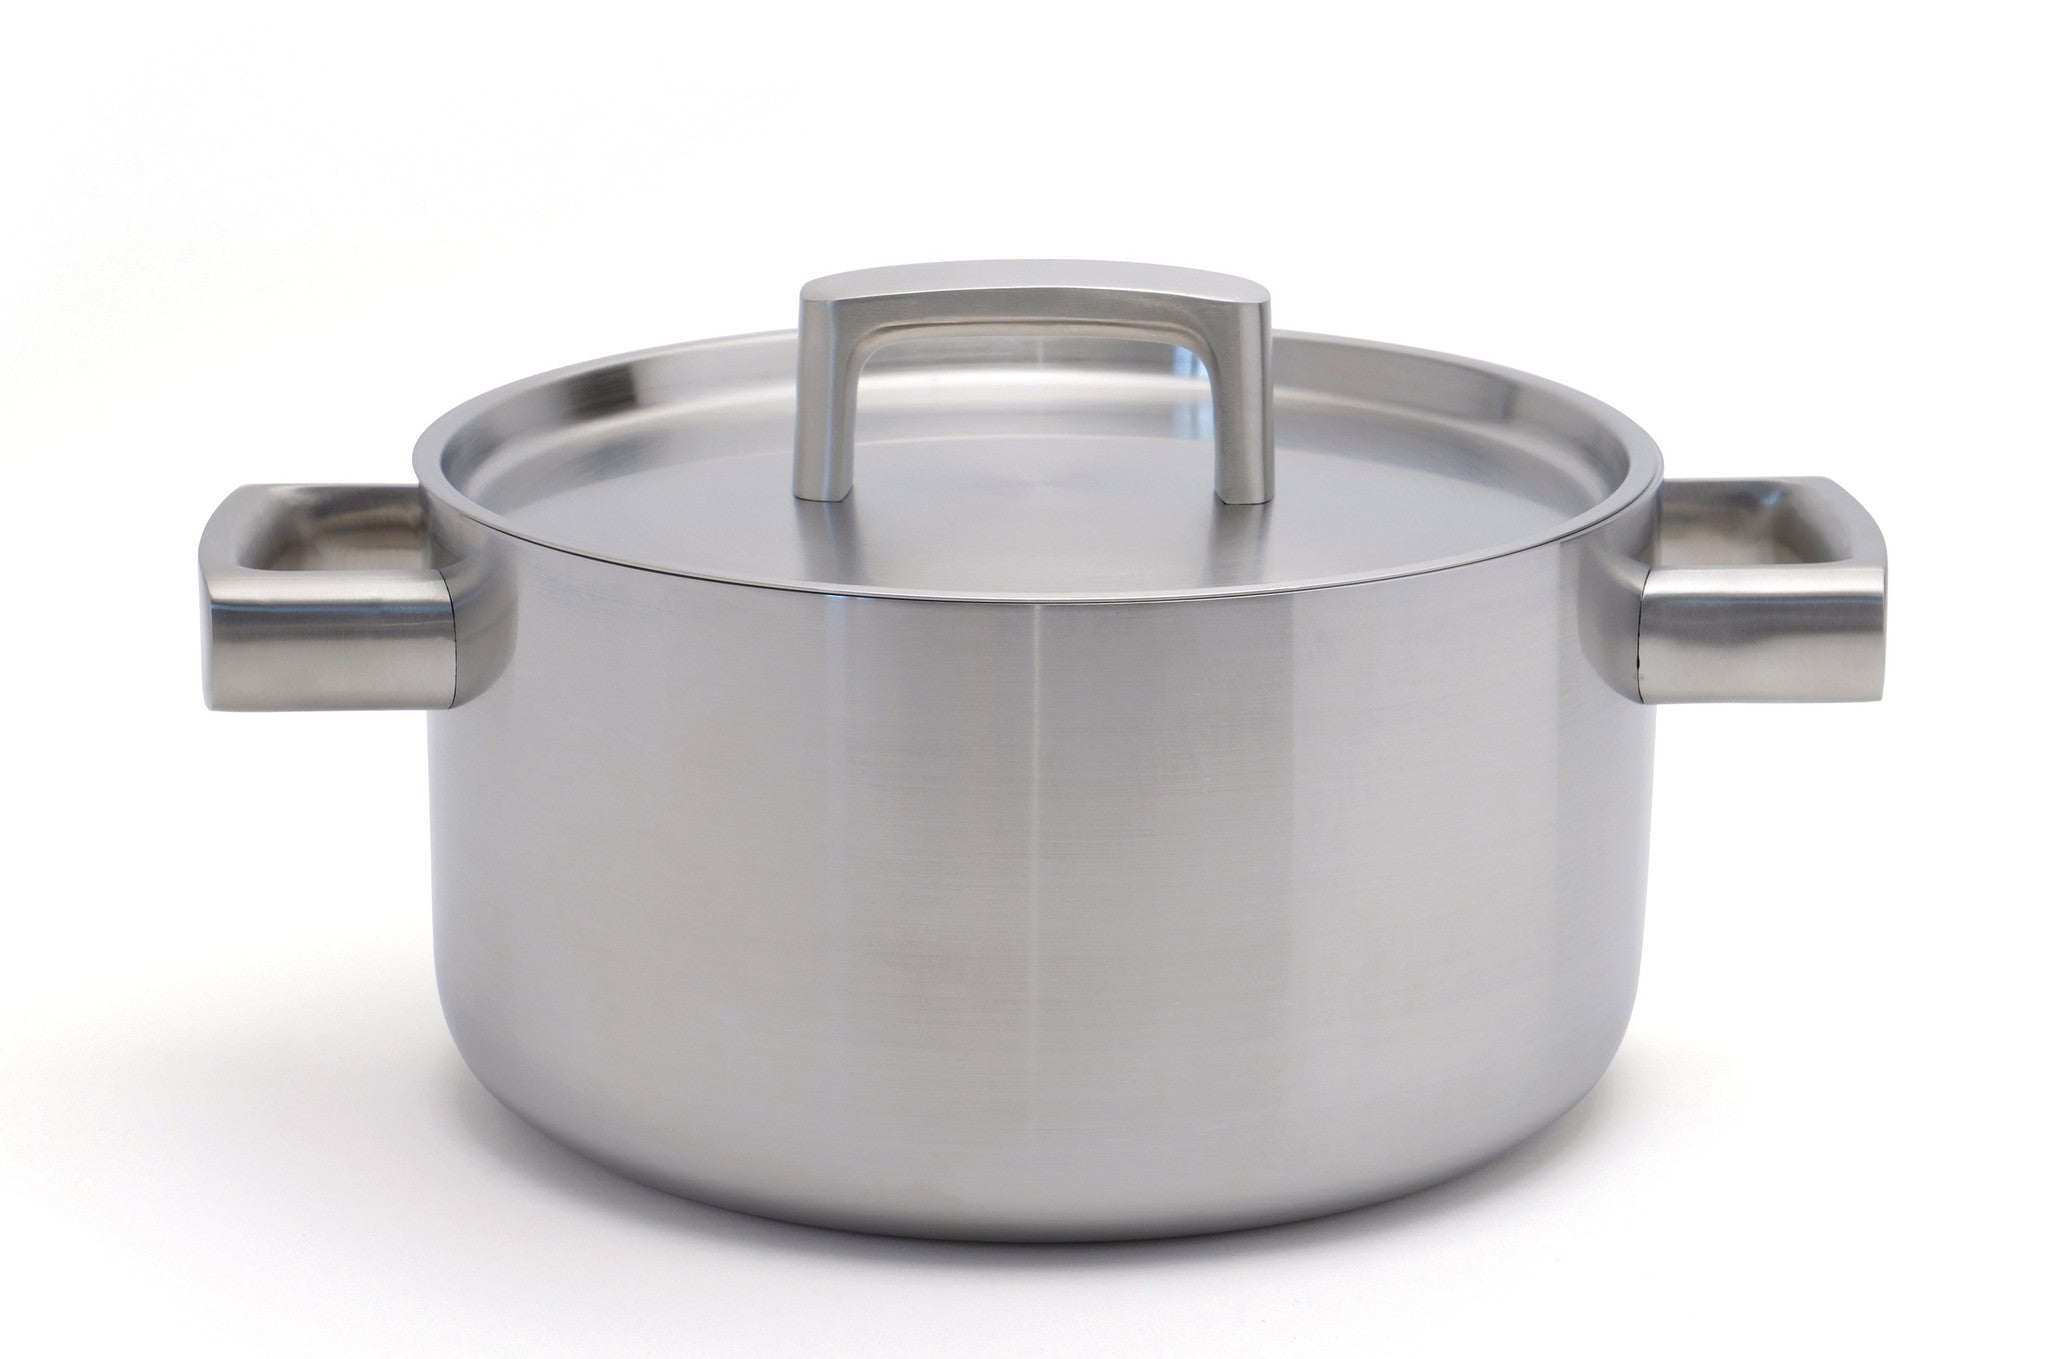 Ron 5-ply 22cm Stainless Steel Casserole Pan with Lid